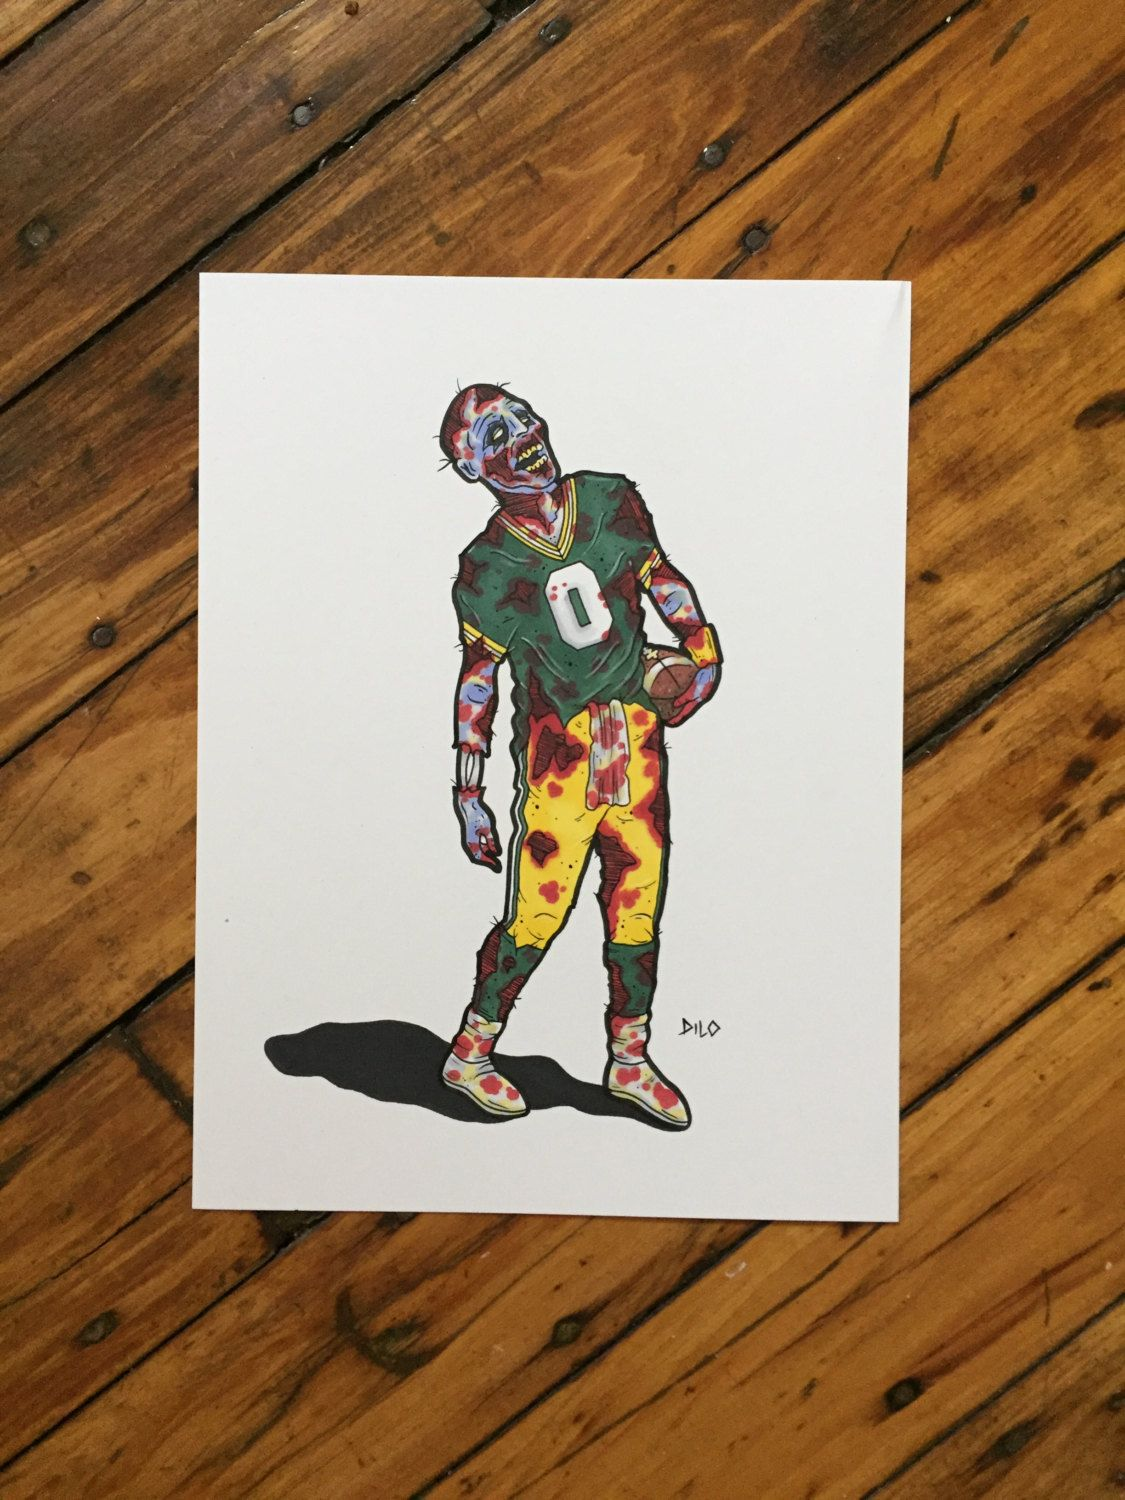 Green Bay Packers, Zombie Football Player, Cheese Head, Packers Decor, Home  Decor, The Walking Dead, Zombies, Original Art, Wall Art